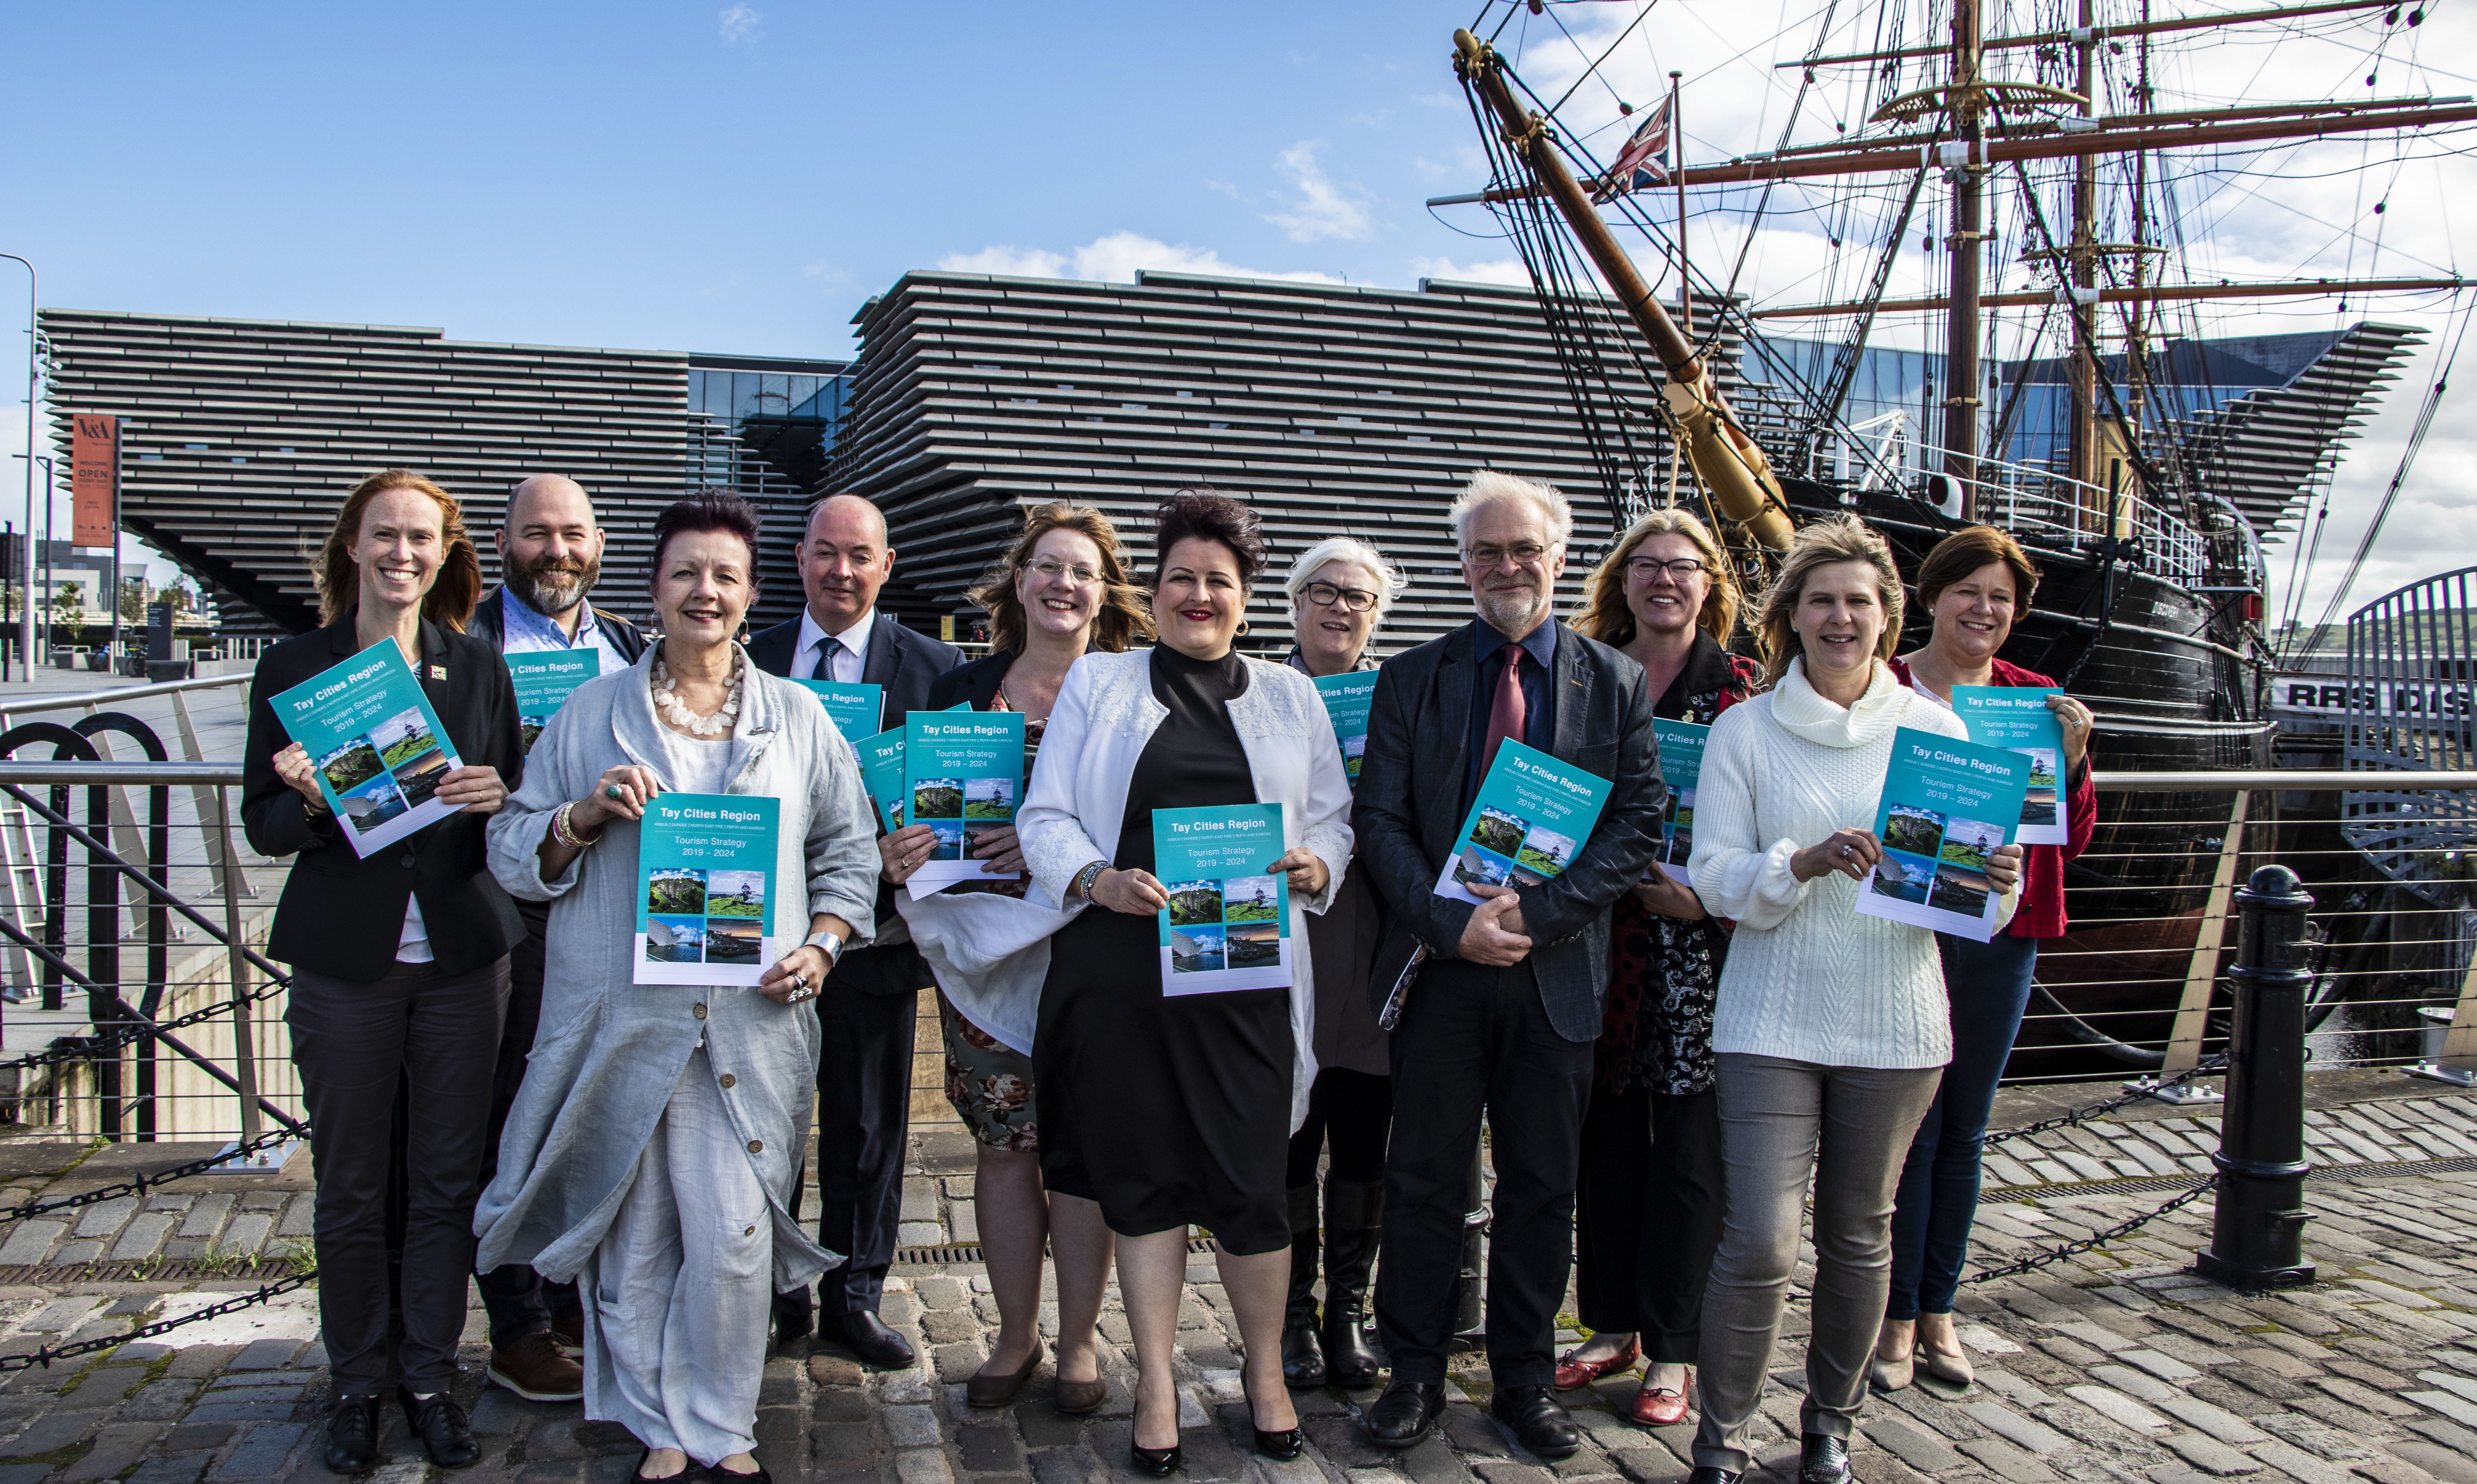 Tourism representatives launching the new strategy.